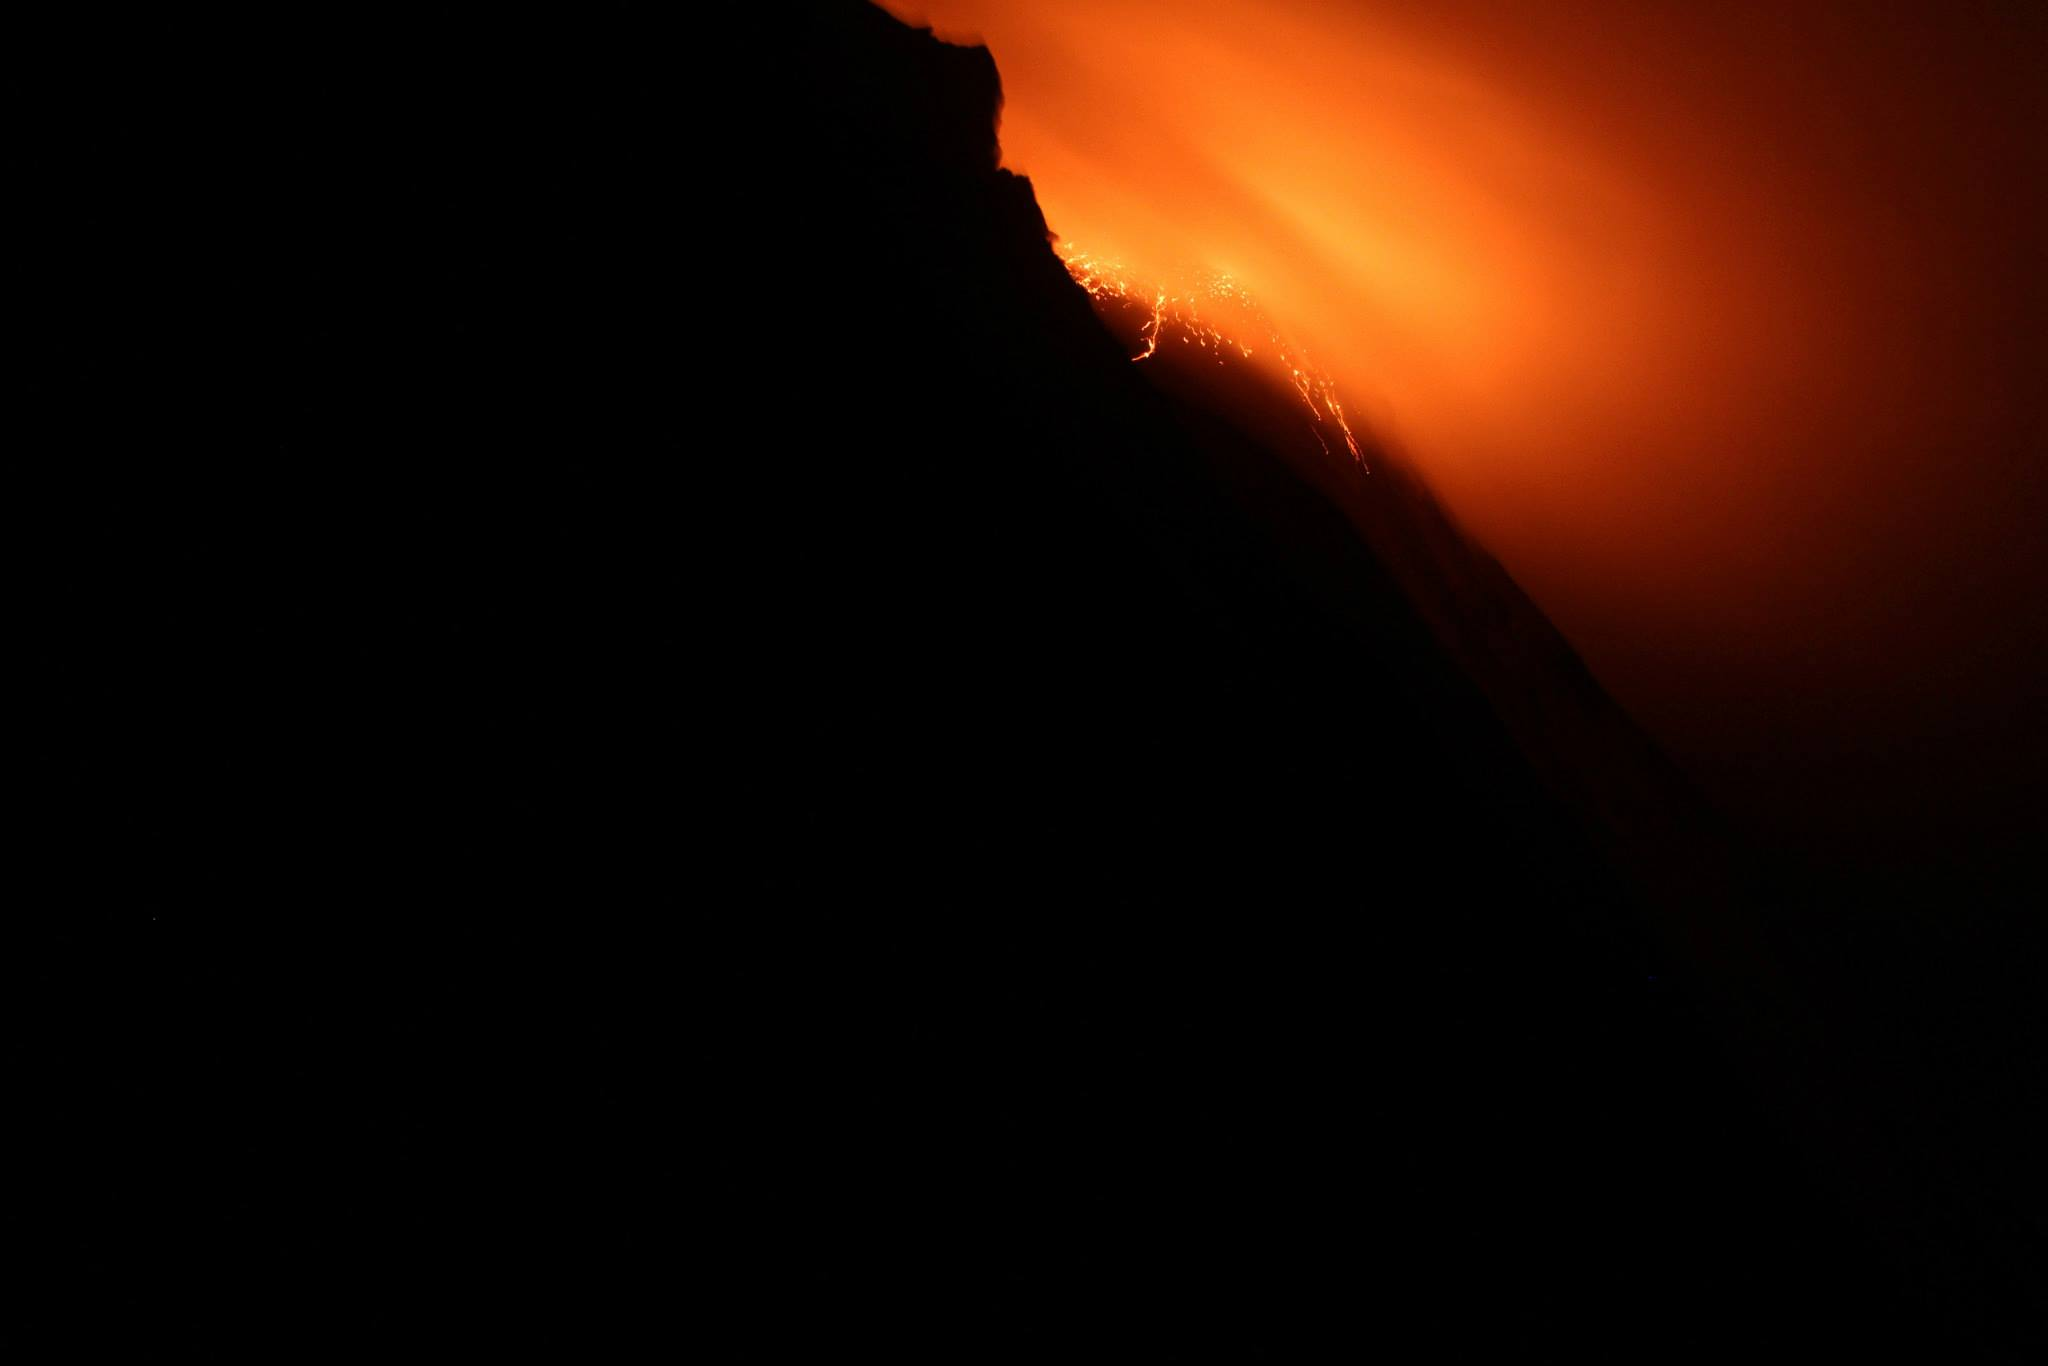 This is what it looks like when you are running away from an erupting volcano in the dark and your headlamp dies.